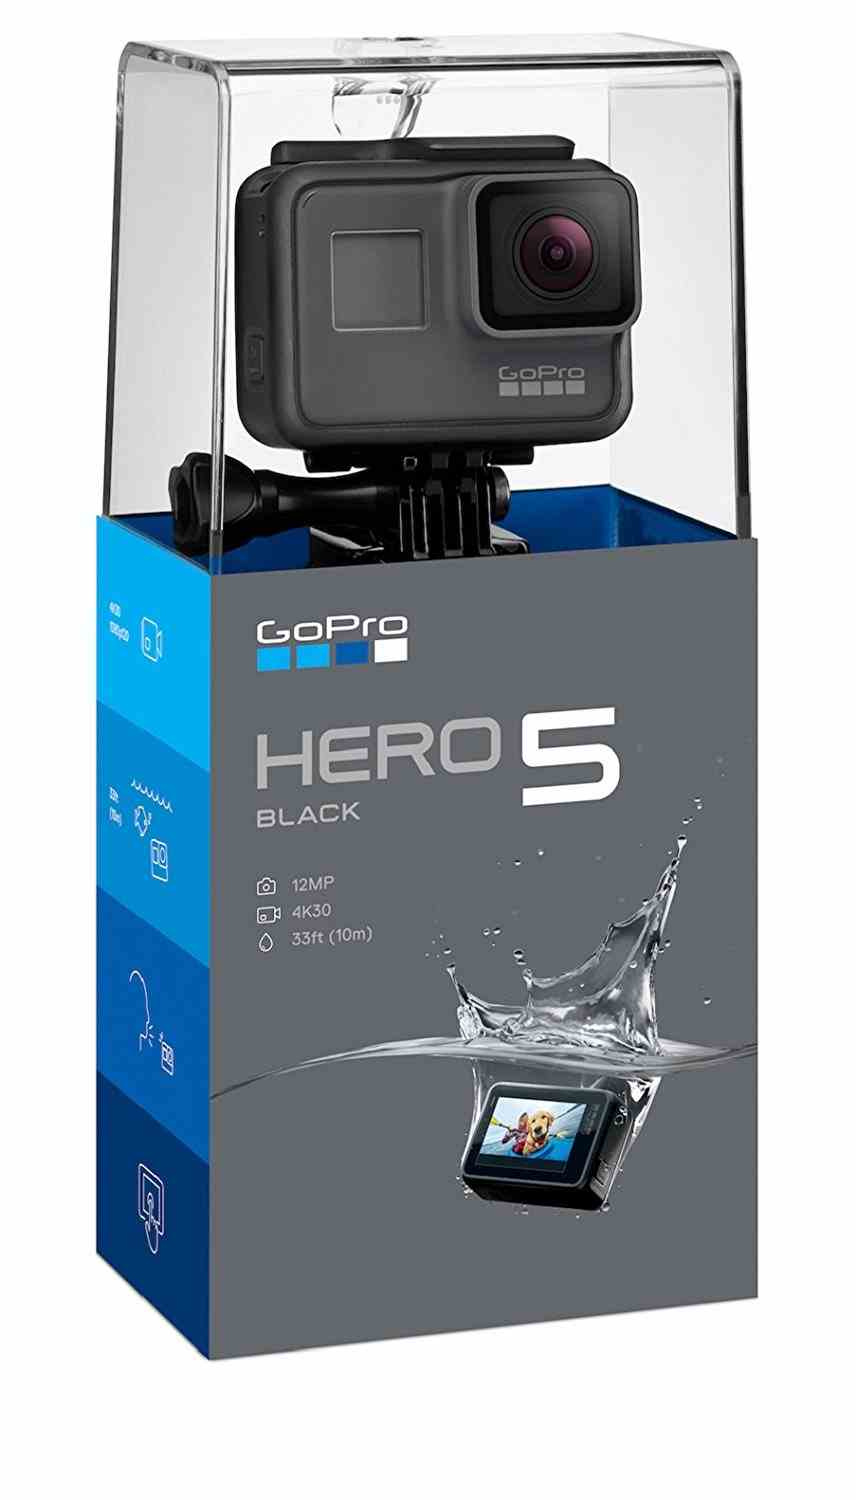 GoPro HERO5 Black best action camera for hunting